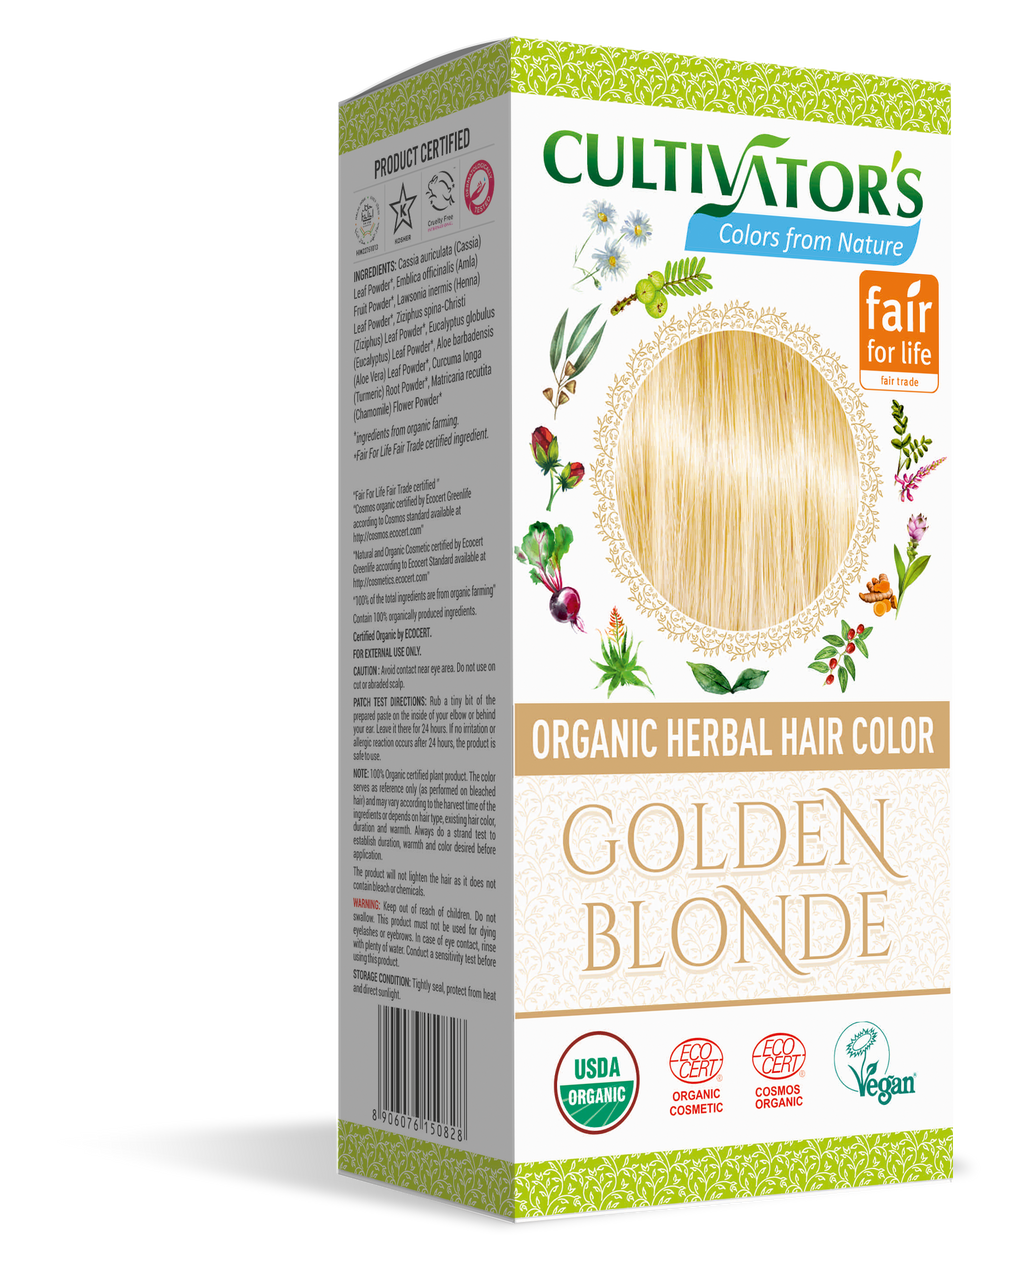 Explore Organic Herbal Hair Color Golden Blonde | Cultivators